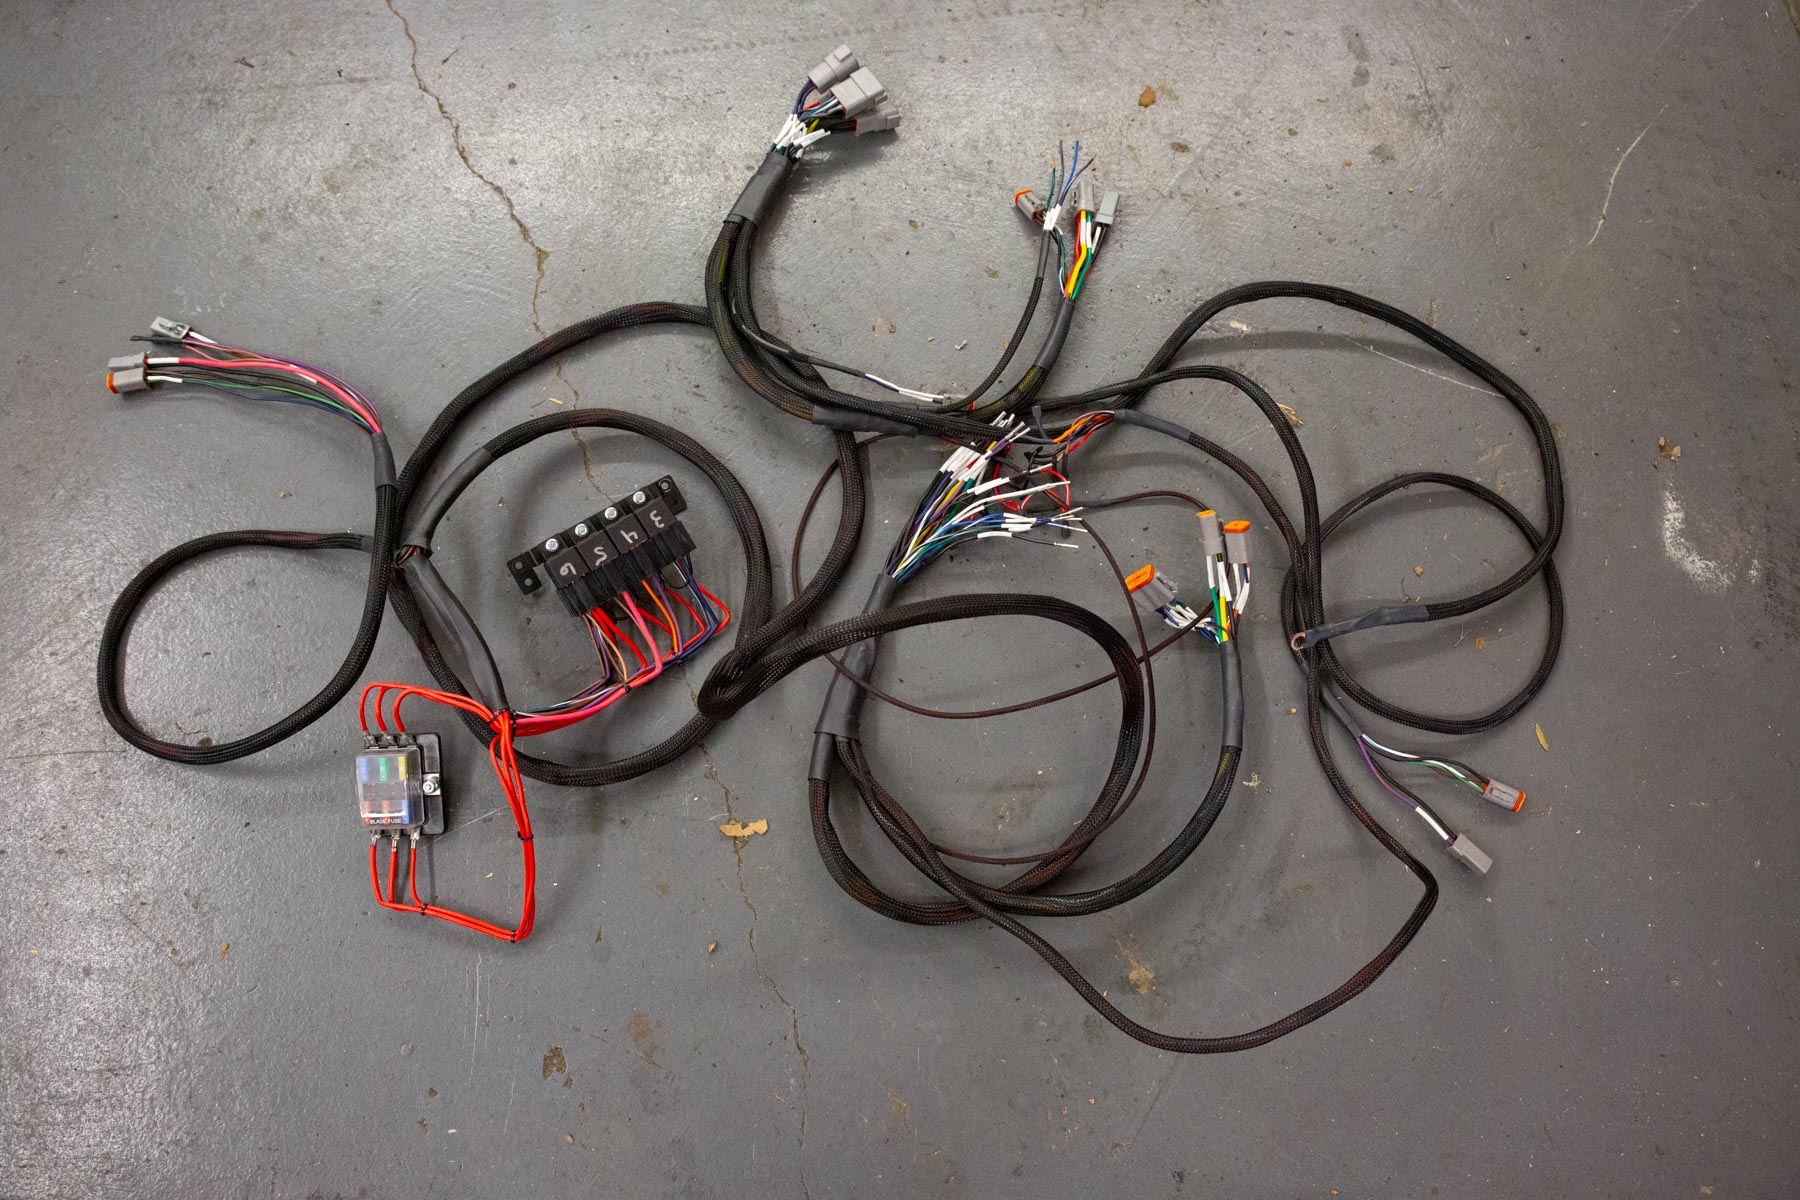 hight resolution of nitrous outlet s pro wiring harness and promax nitrous controller nitrous outlet wiring harness nitrous wiring harness